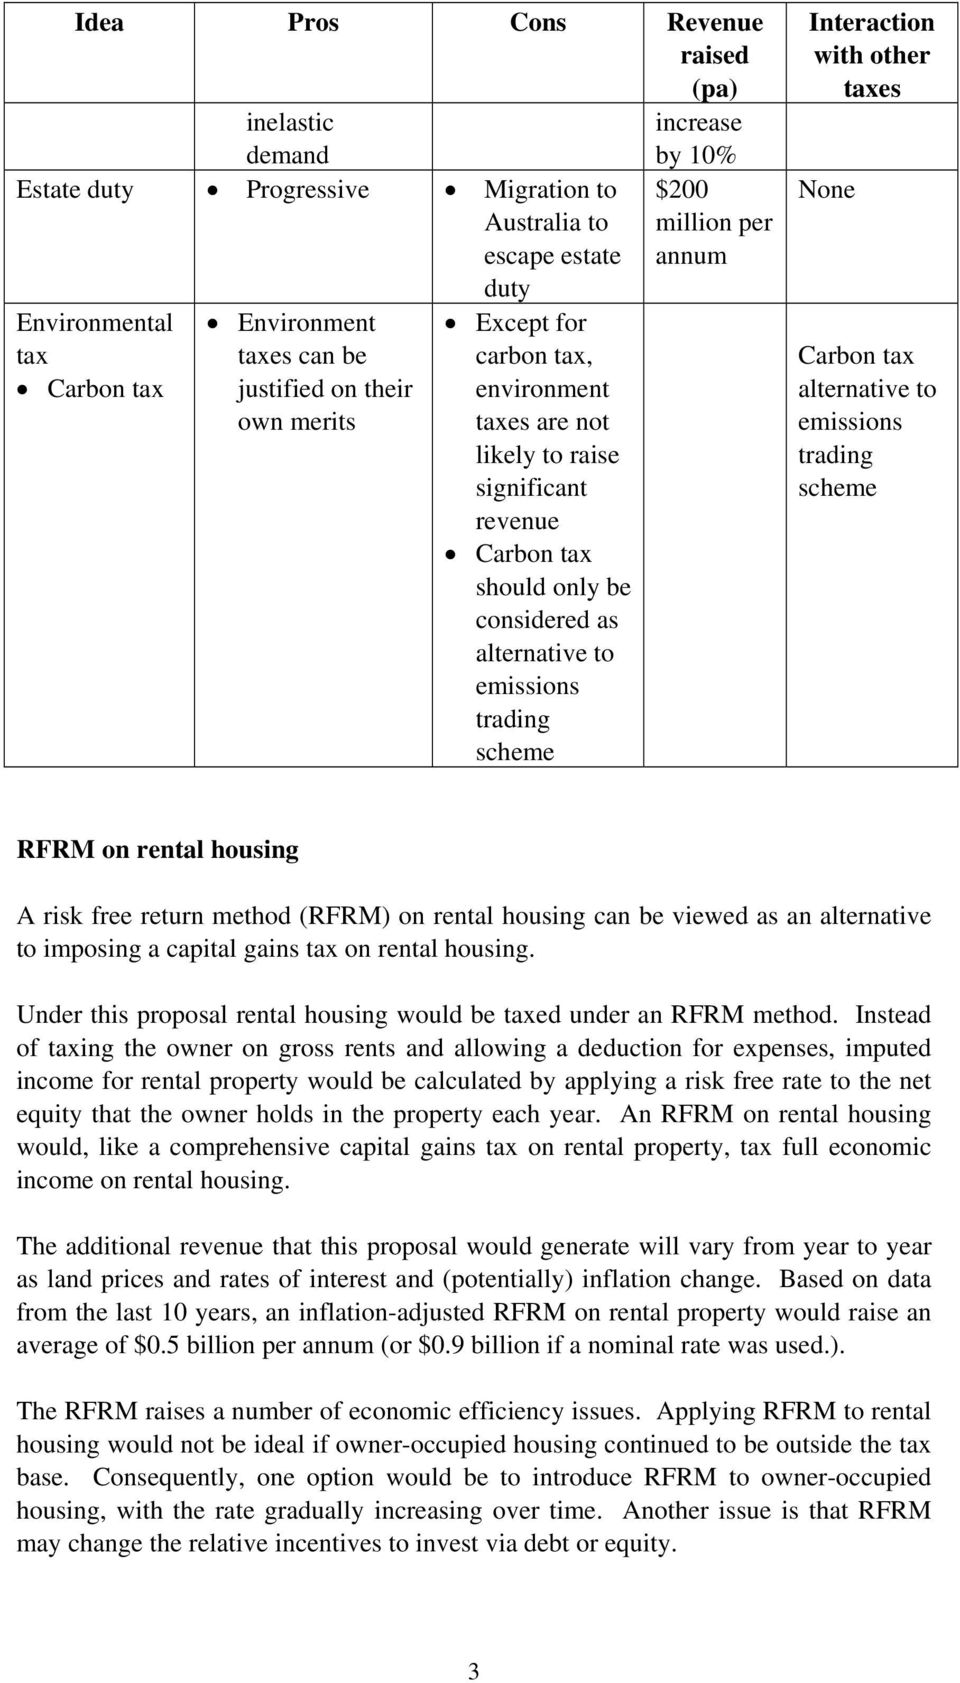 million per annum Interaction with other taxes None Carbon tax alternative to emissions trading scheme RFRM on rental housing A risk free return method (RFRM) on rental housing can be viewed as an